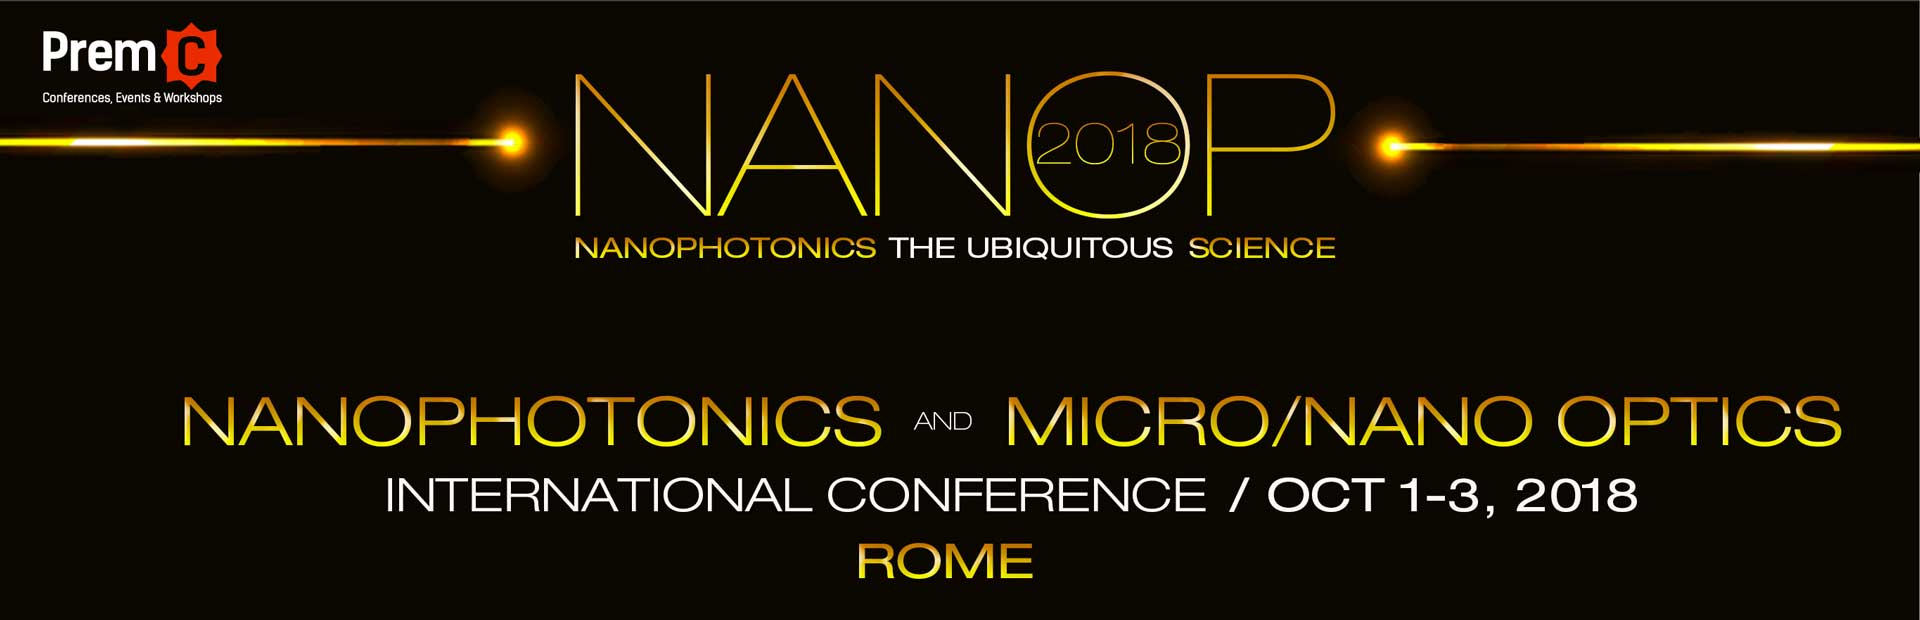 Nanophotonics and Micro/Nano Optics International Conference 2017 banner